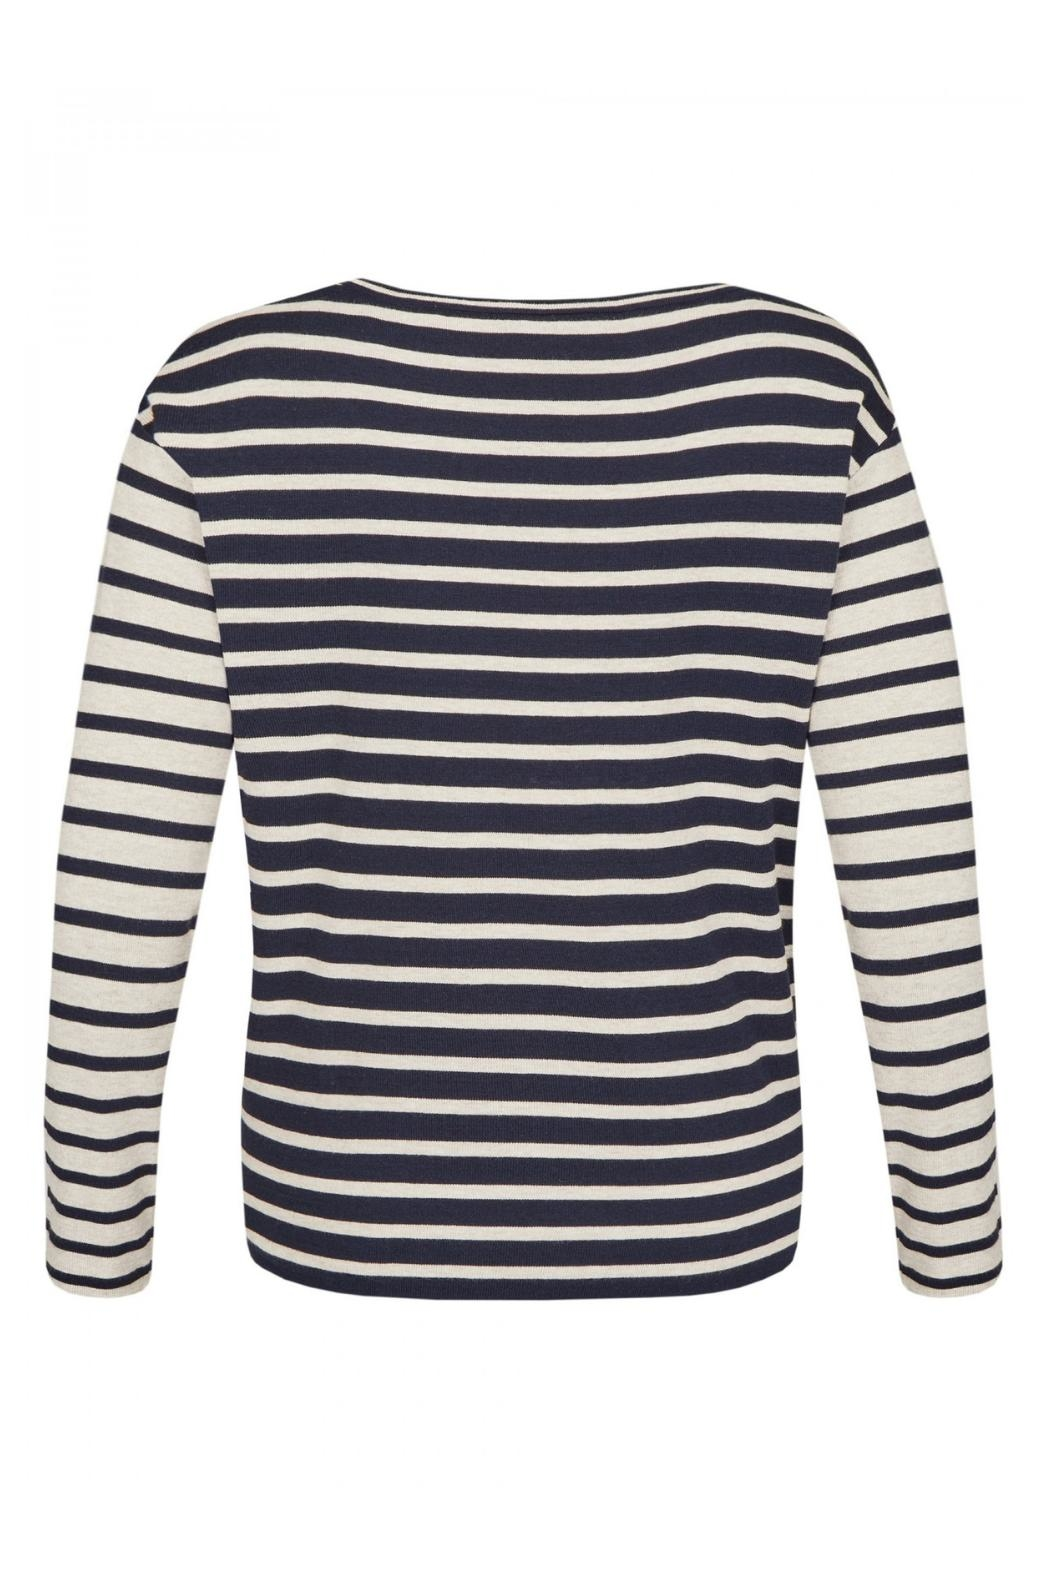 Via Appia Striped Sweater - Front Full Image